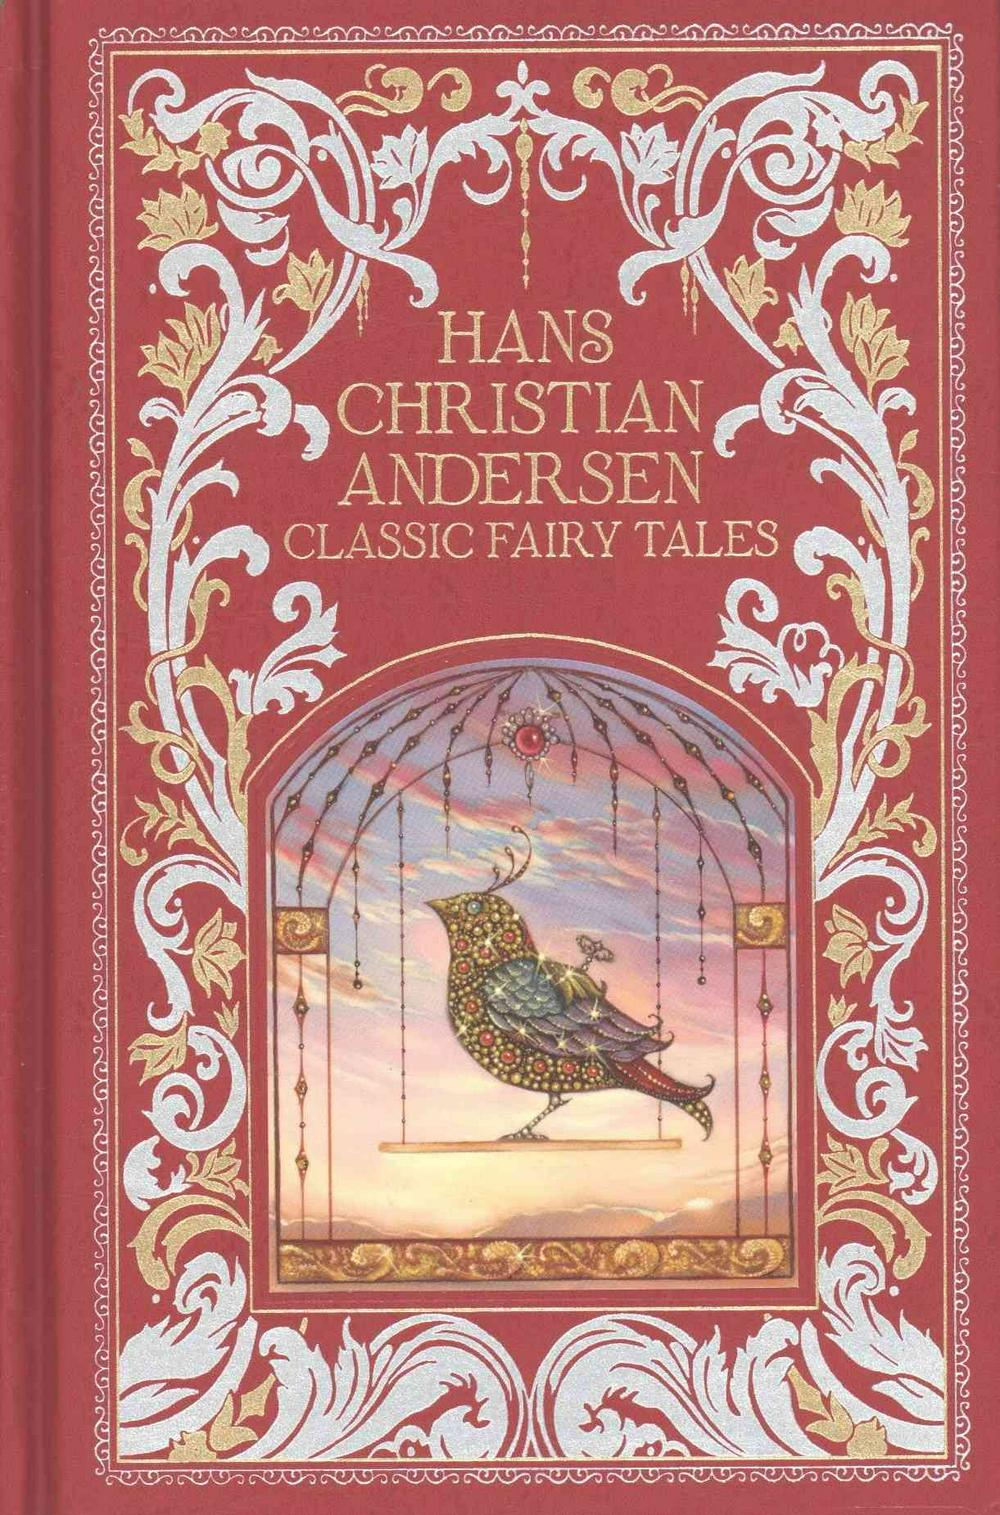 Hans Christian AndersenClassic Fairy Tales by Hans Christian Andersen,Dugald Stewart Walker,Hans Tegner, ISBN: 9781435158122